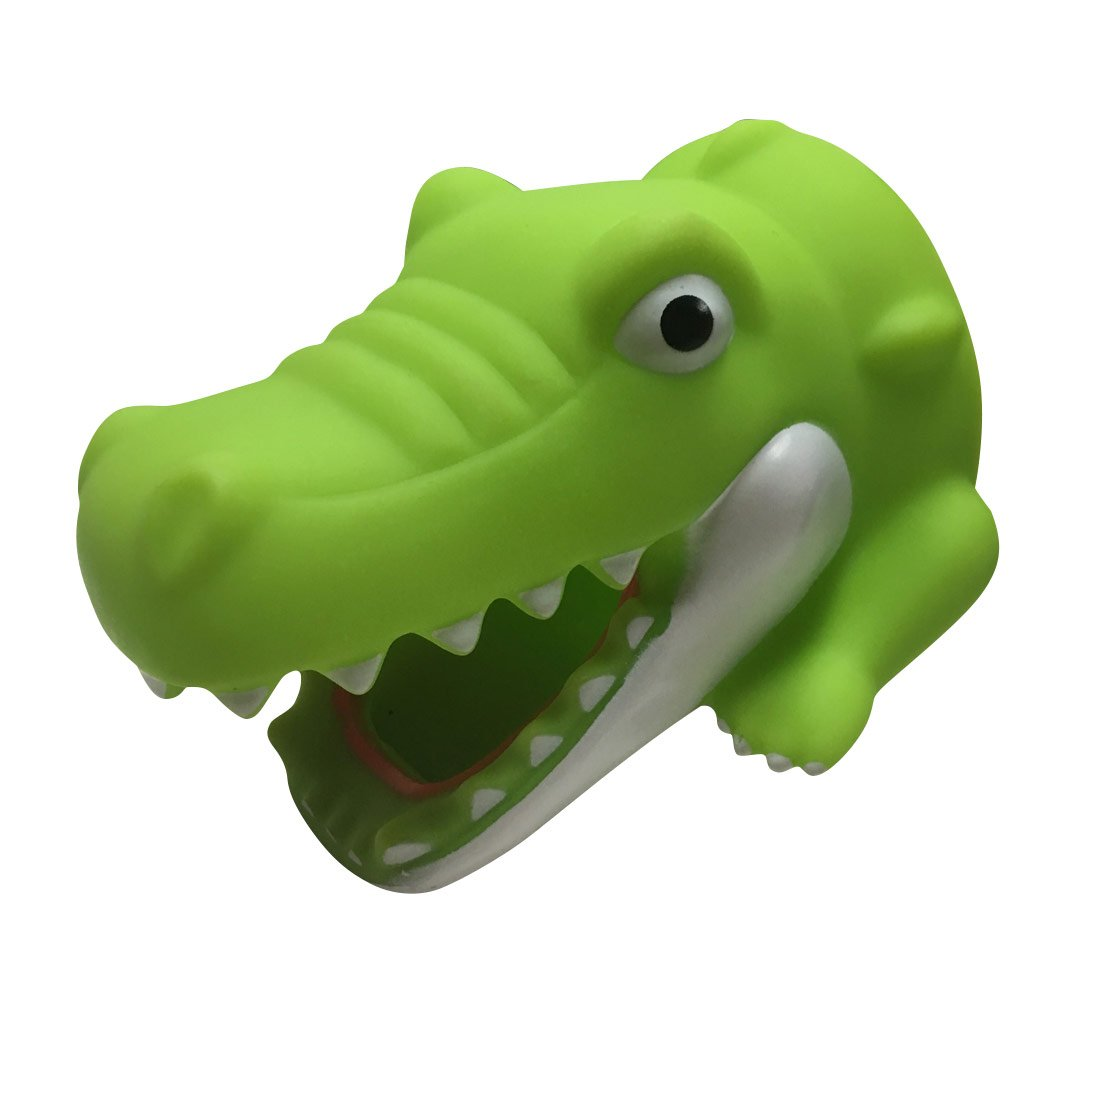 TBW Crocodile Cute Character Faucet Extender Hand Washing Extender Protector for Kids